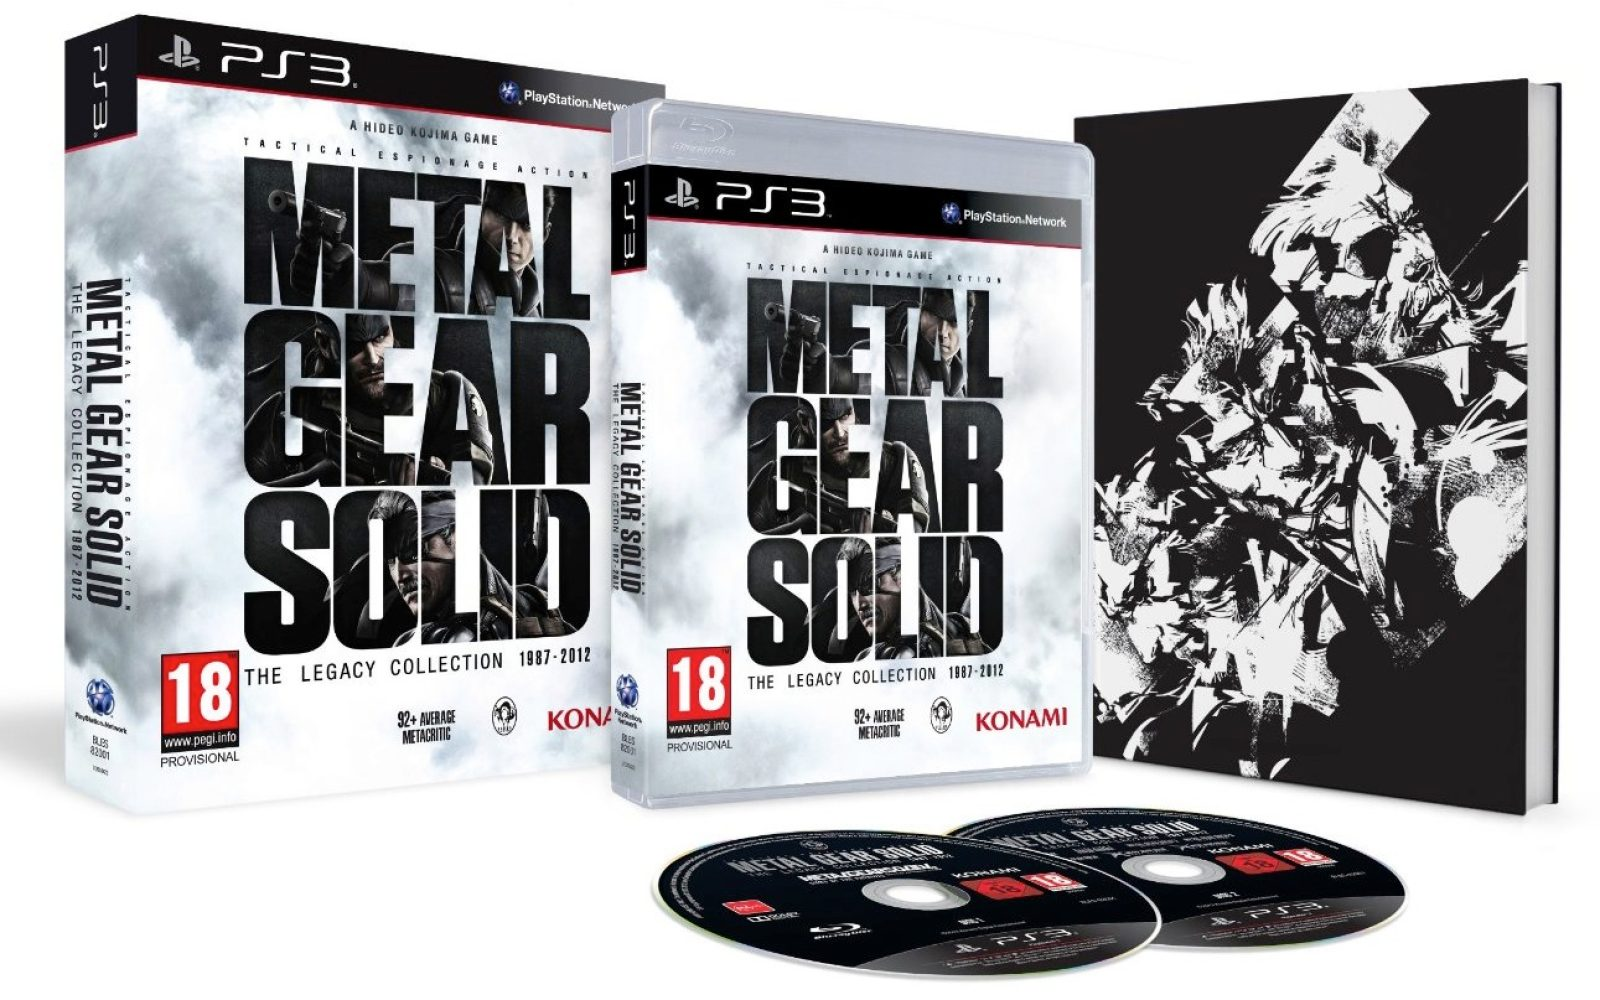 Legacy Collection 9to5toys Resident Evil Revelations 1 Reg 3 Game App Deals Metal Gear Solid 40 Diablo Ps3 Xbox 360 50 Ios Freebies More